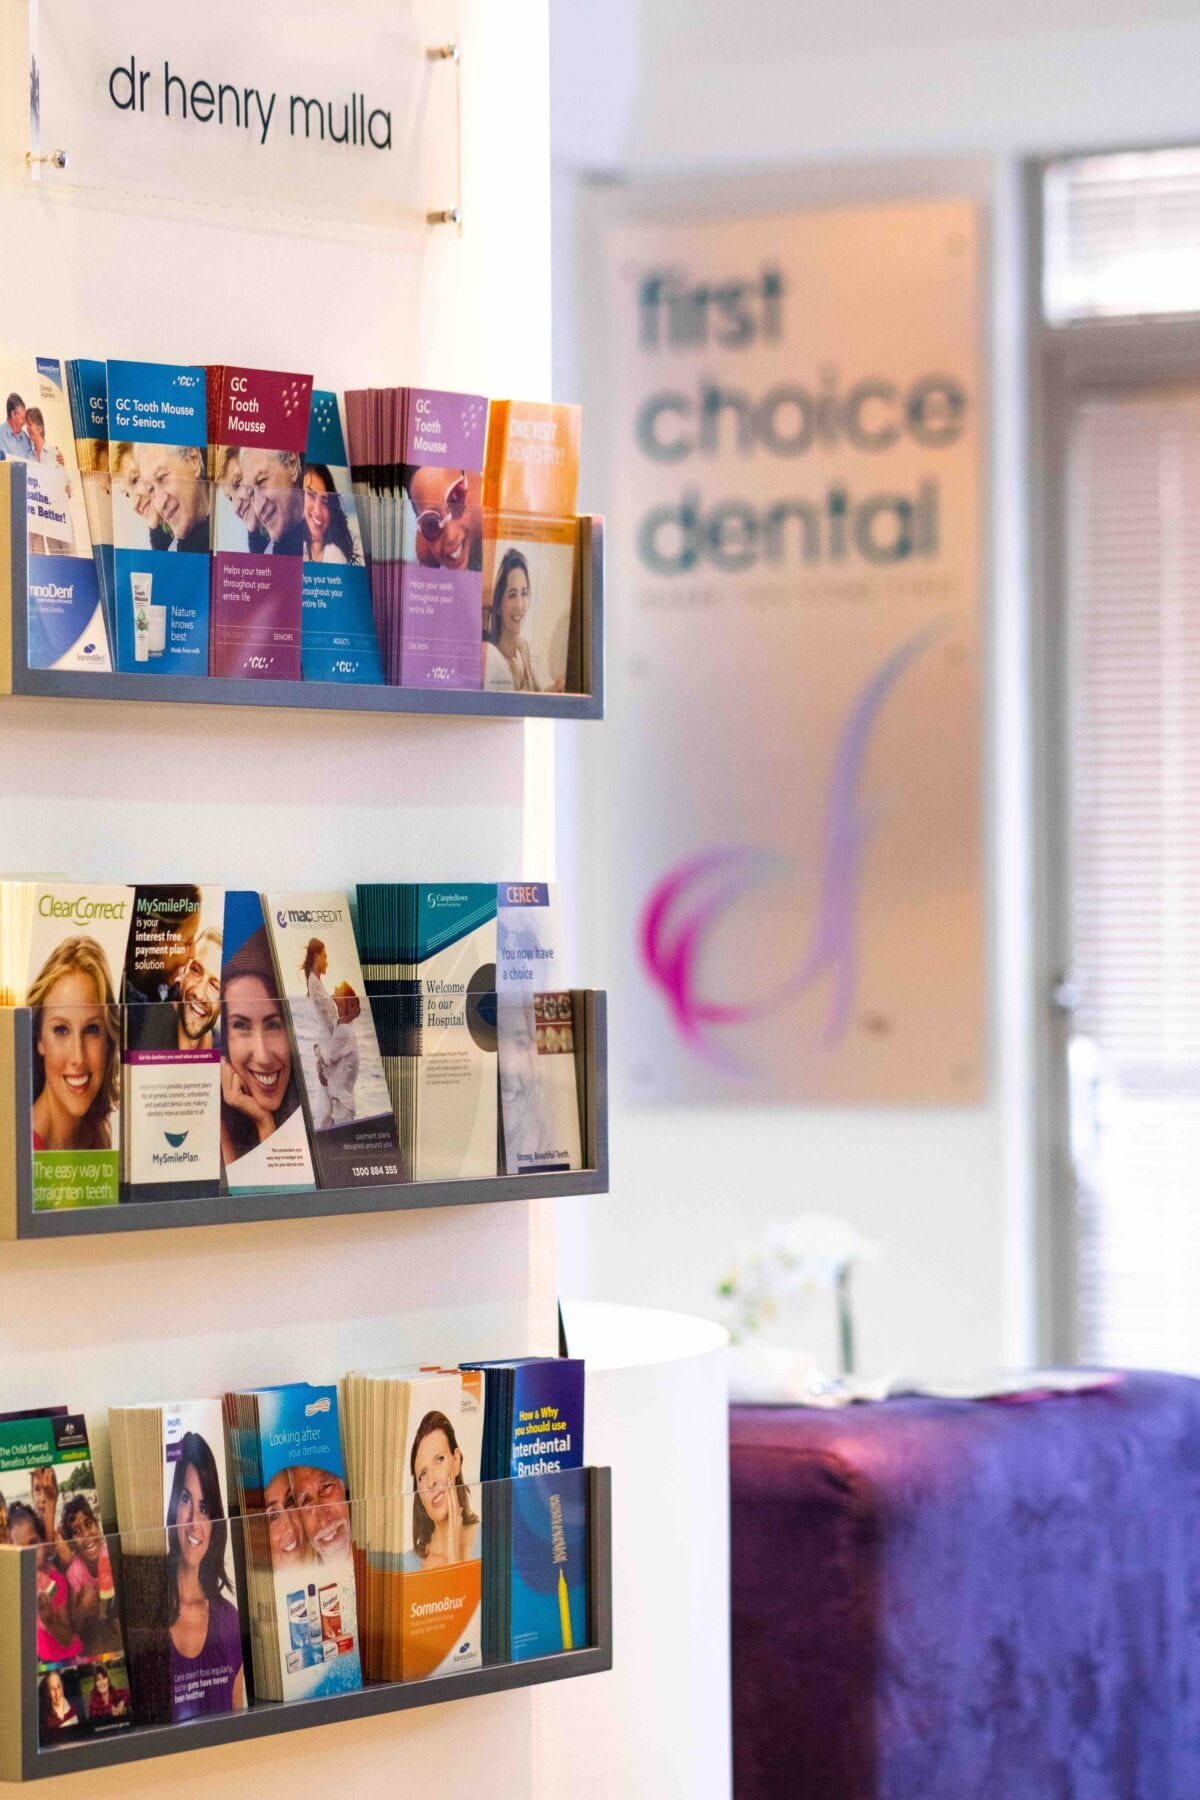 Home First Choice Dental